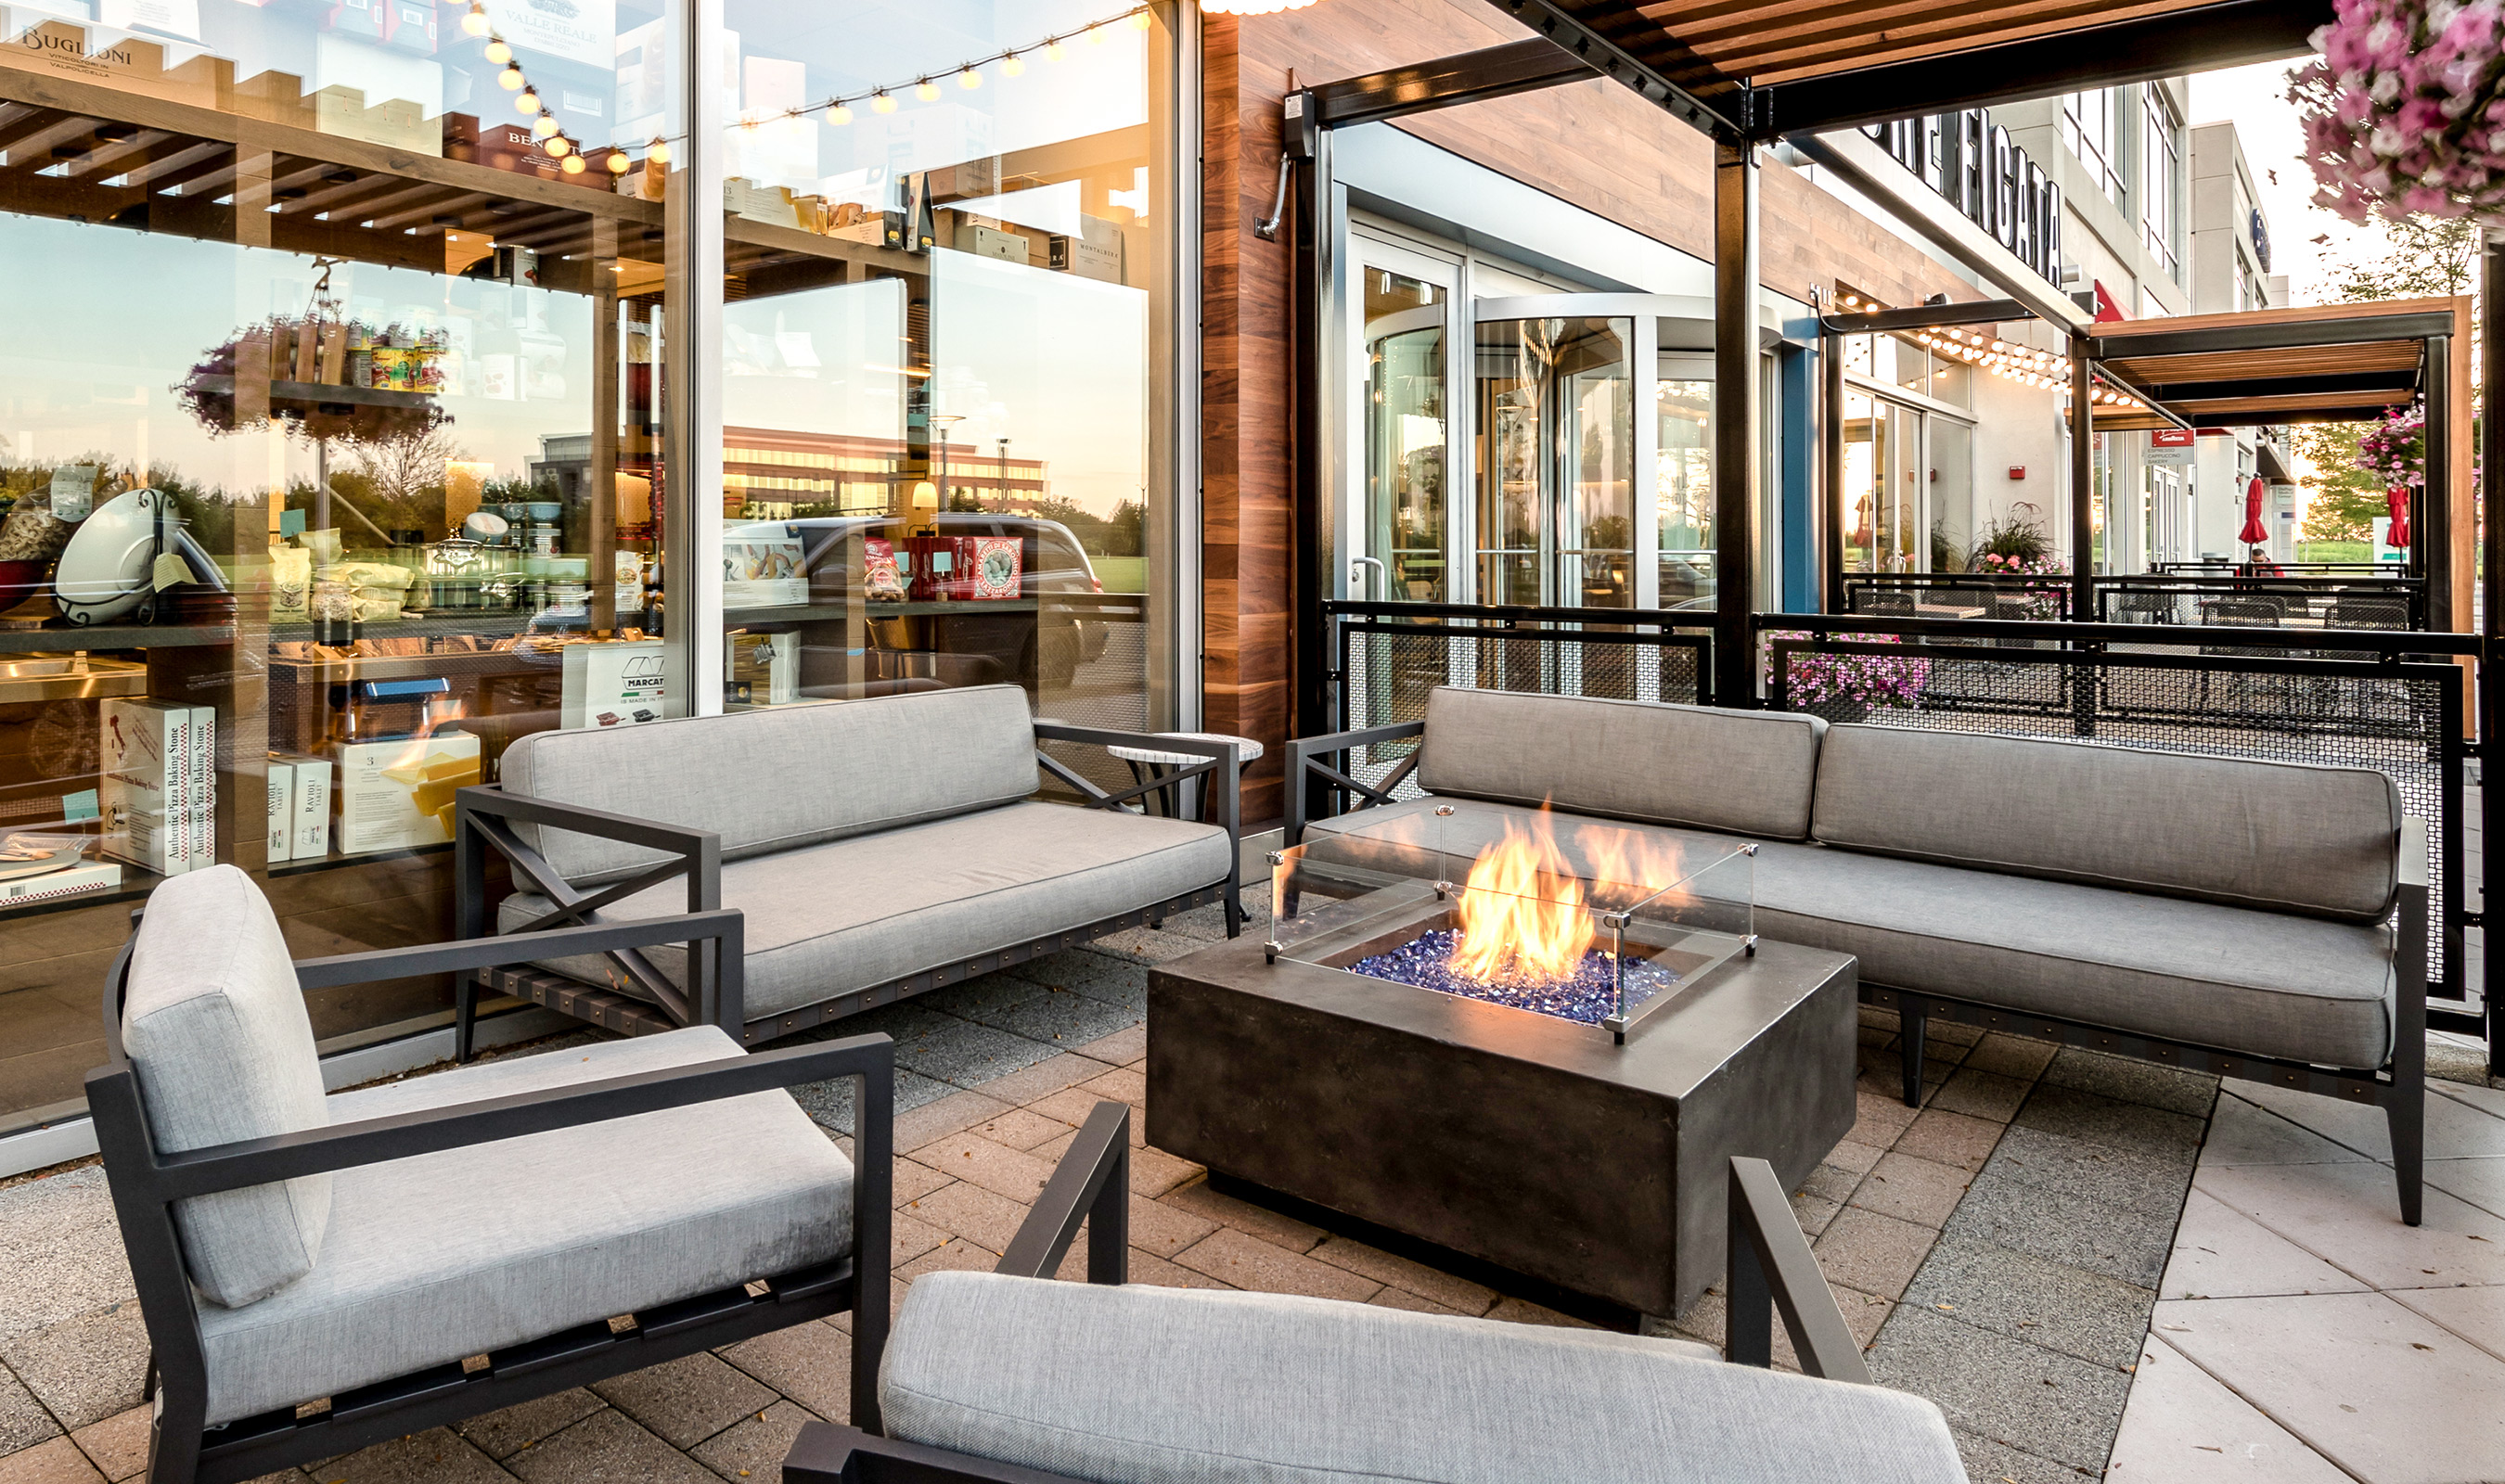 The luxurious patio at Che Figata is surrounded by railing that uses Banker Wire's H-1 architectural woven wire mesh pattern.